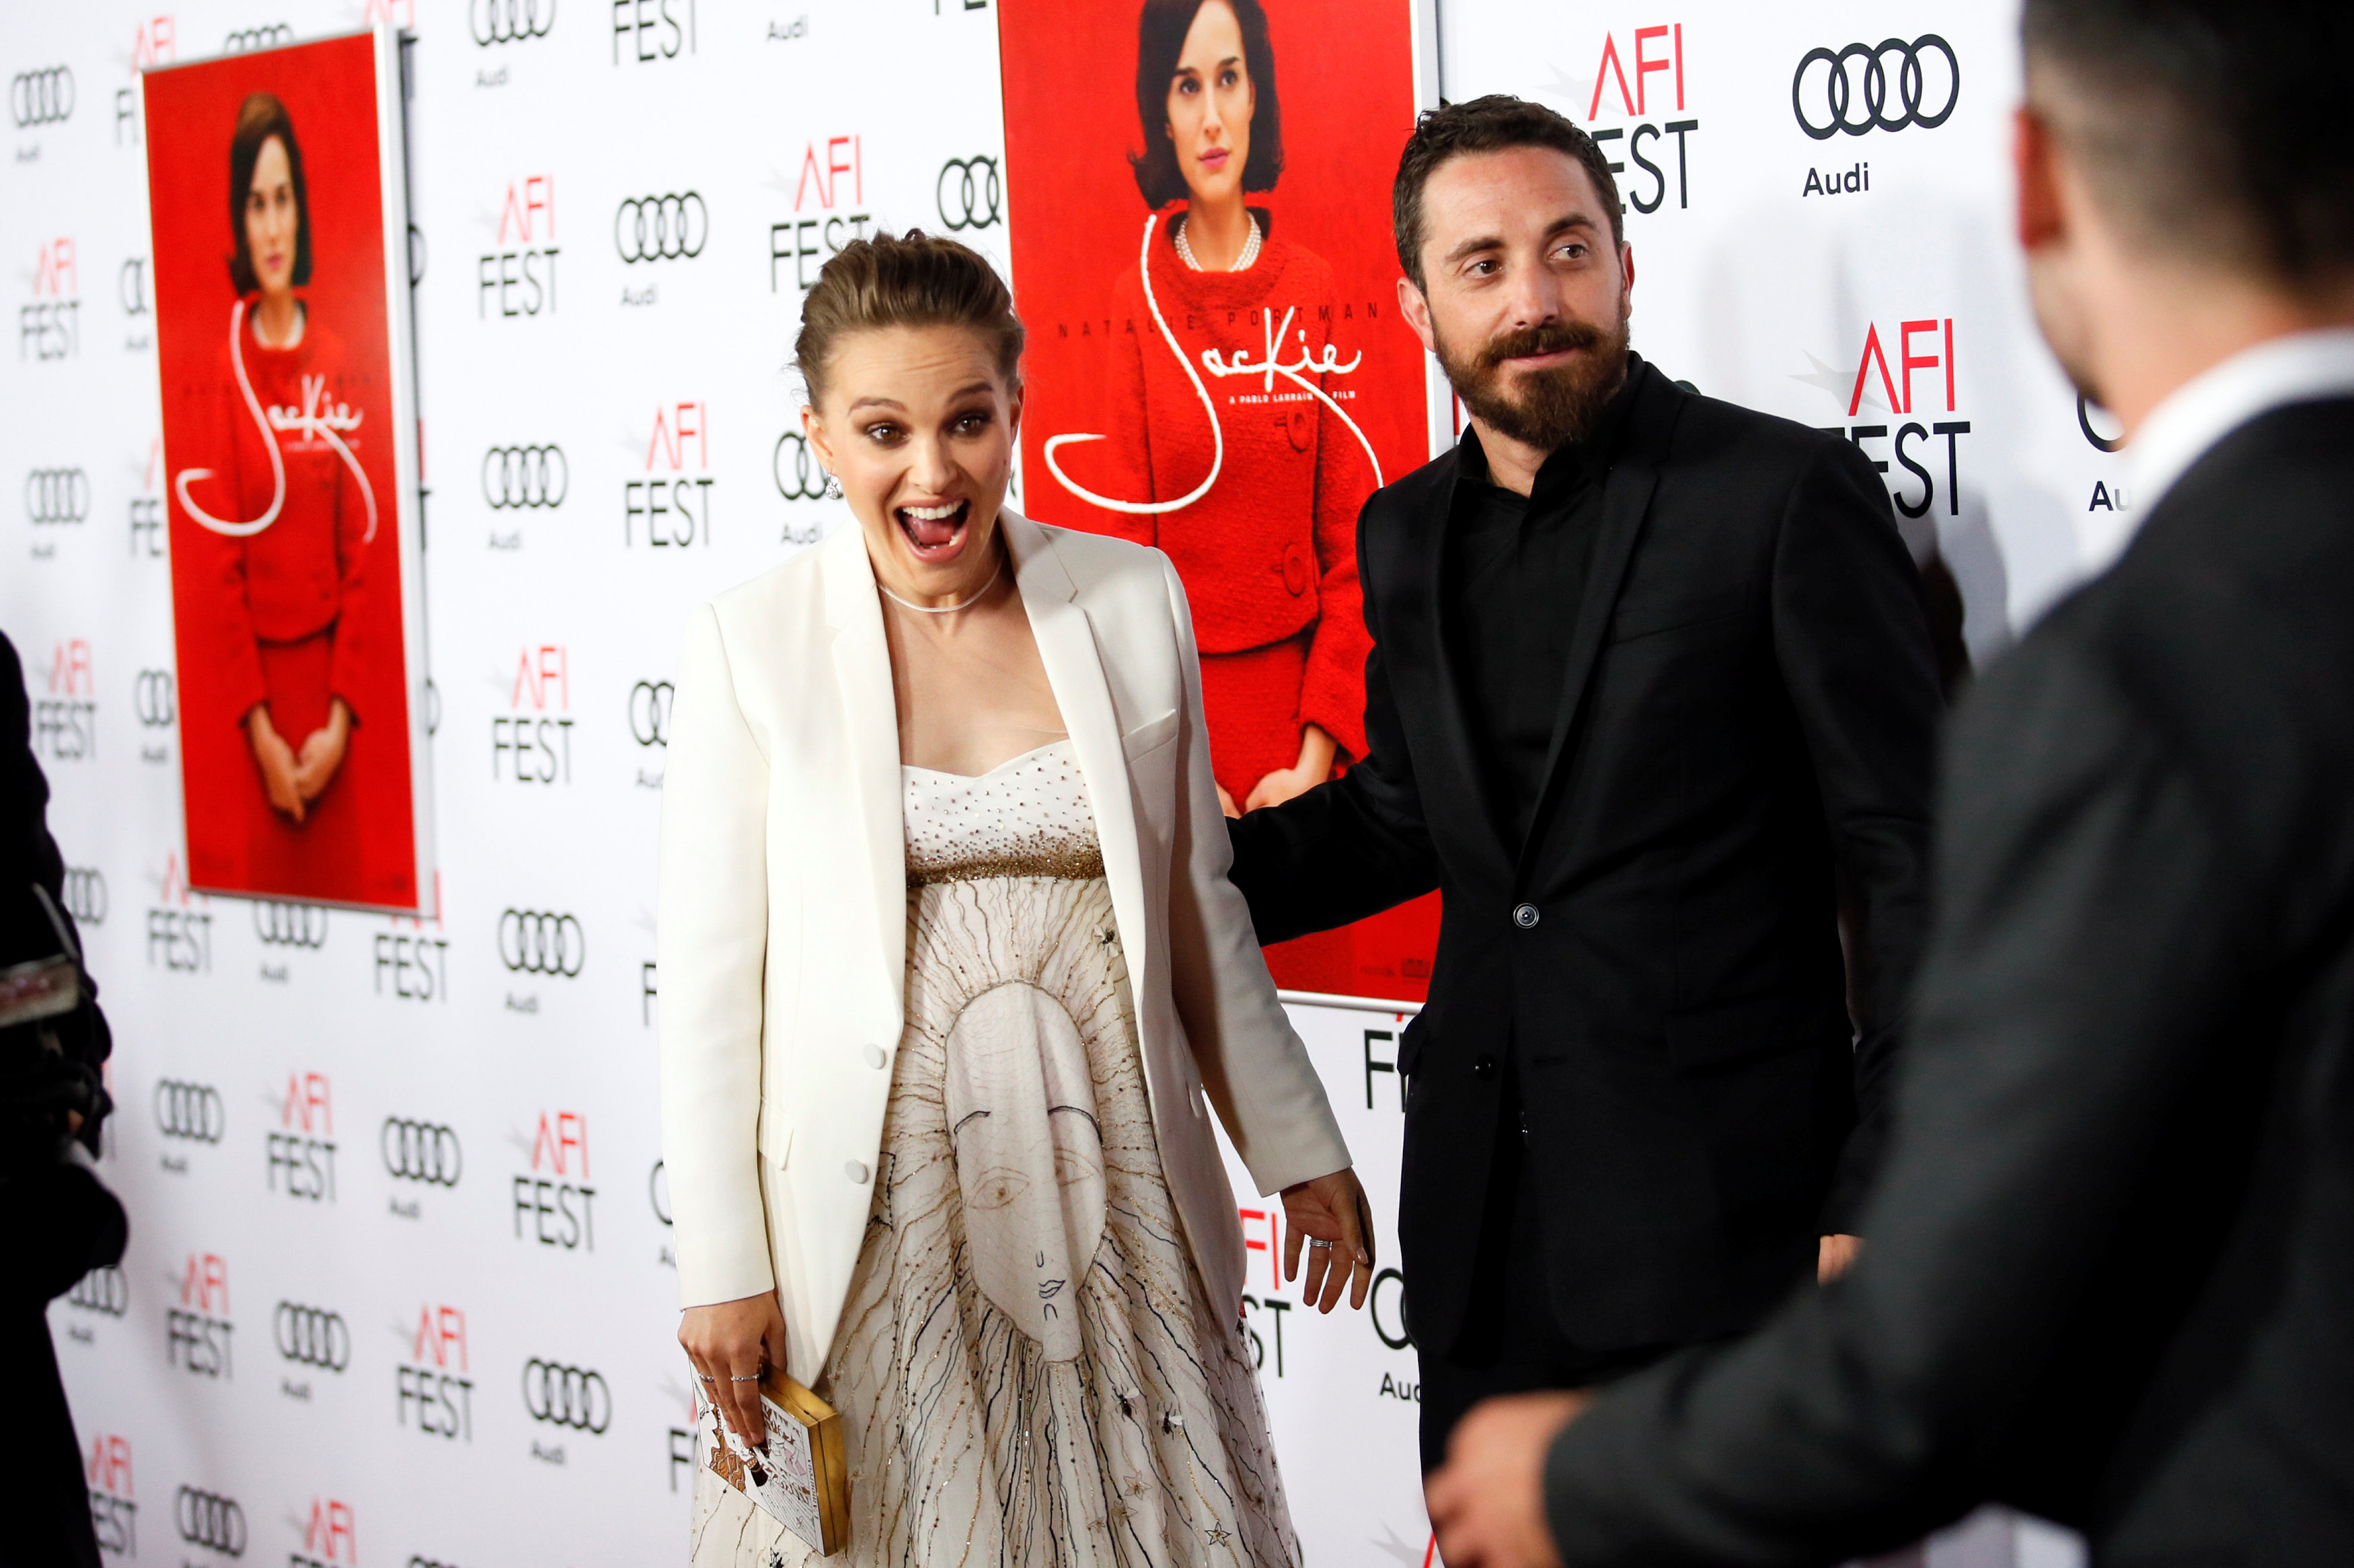 Attending the premiere of 'Jackie' during the American Film Institute (AFI) Festival in Hollywoo